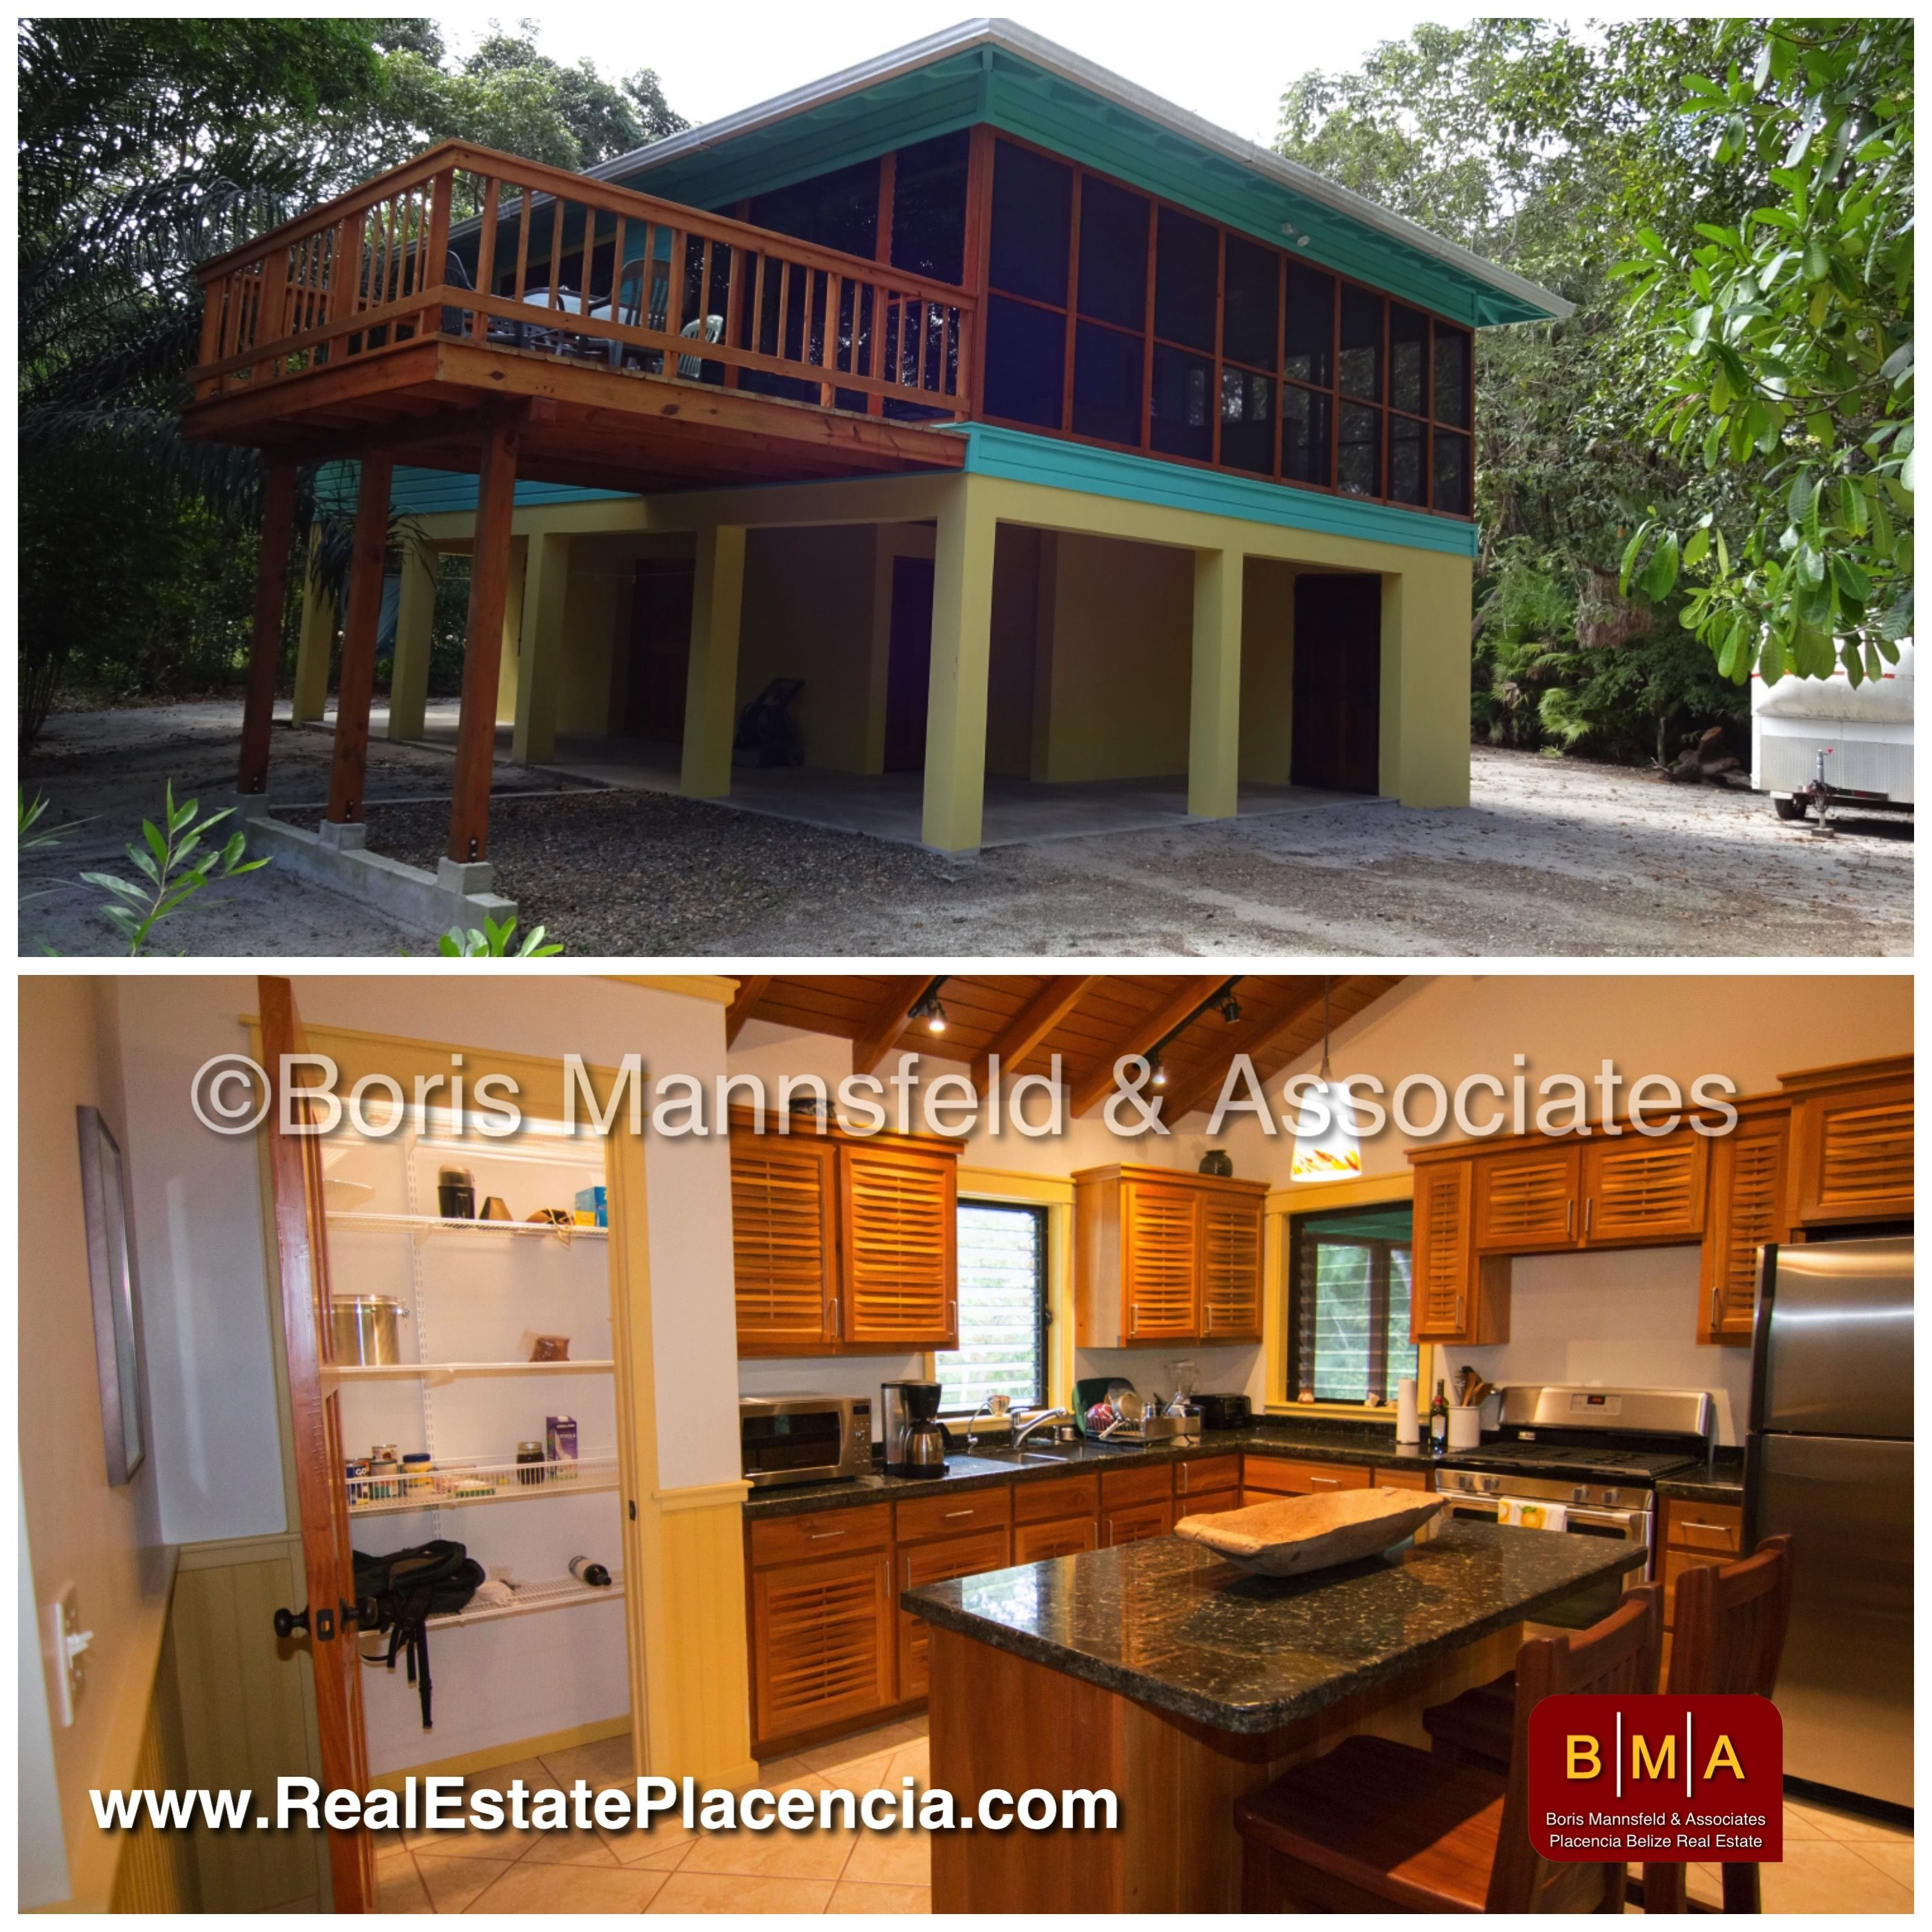 Nh367 Charming House With New Guest Cabin For Sale In Maya Beach Usd 279 000 Charming House Guest Cabin Sale House